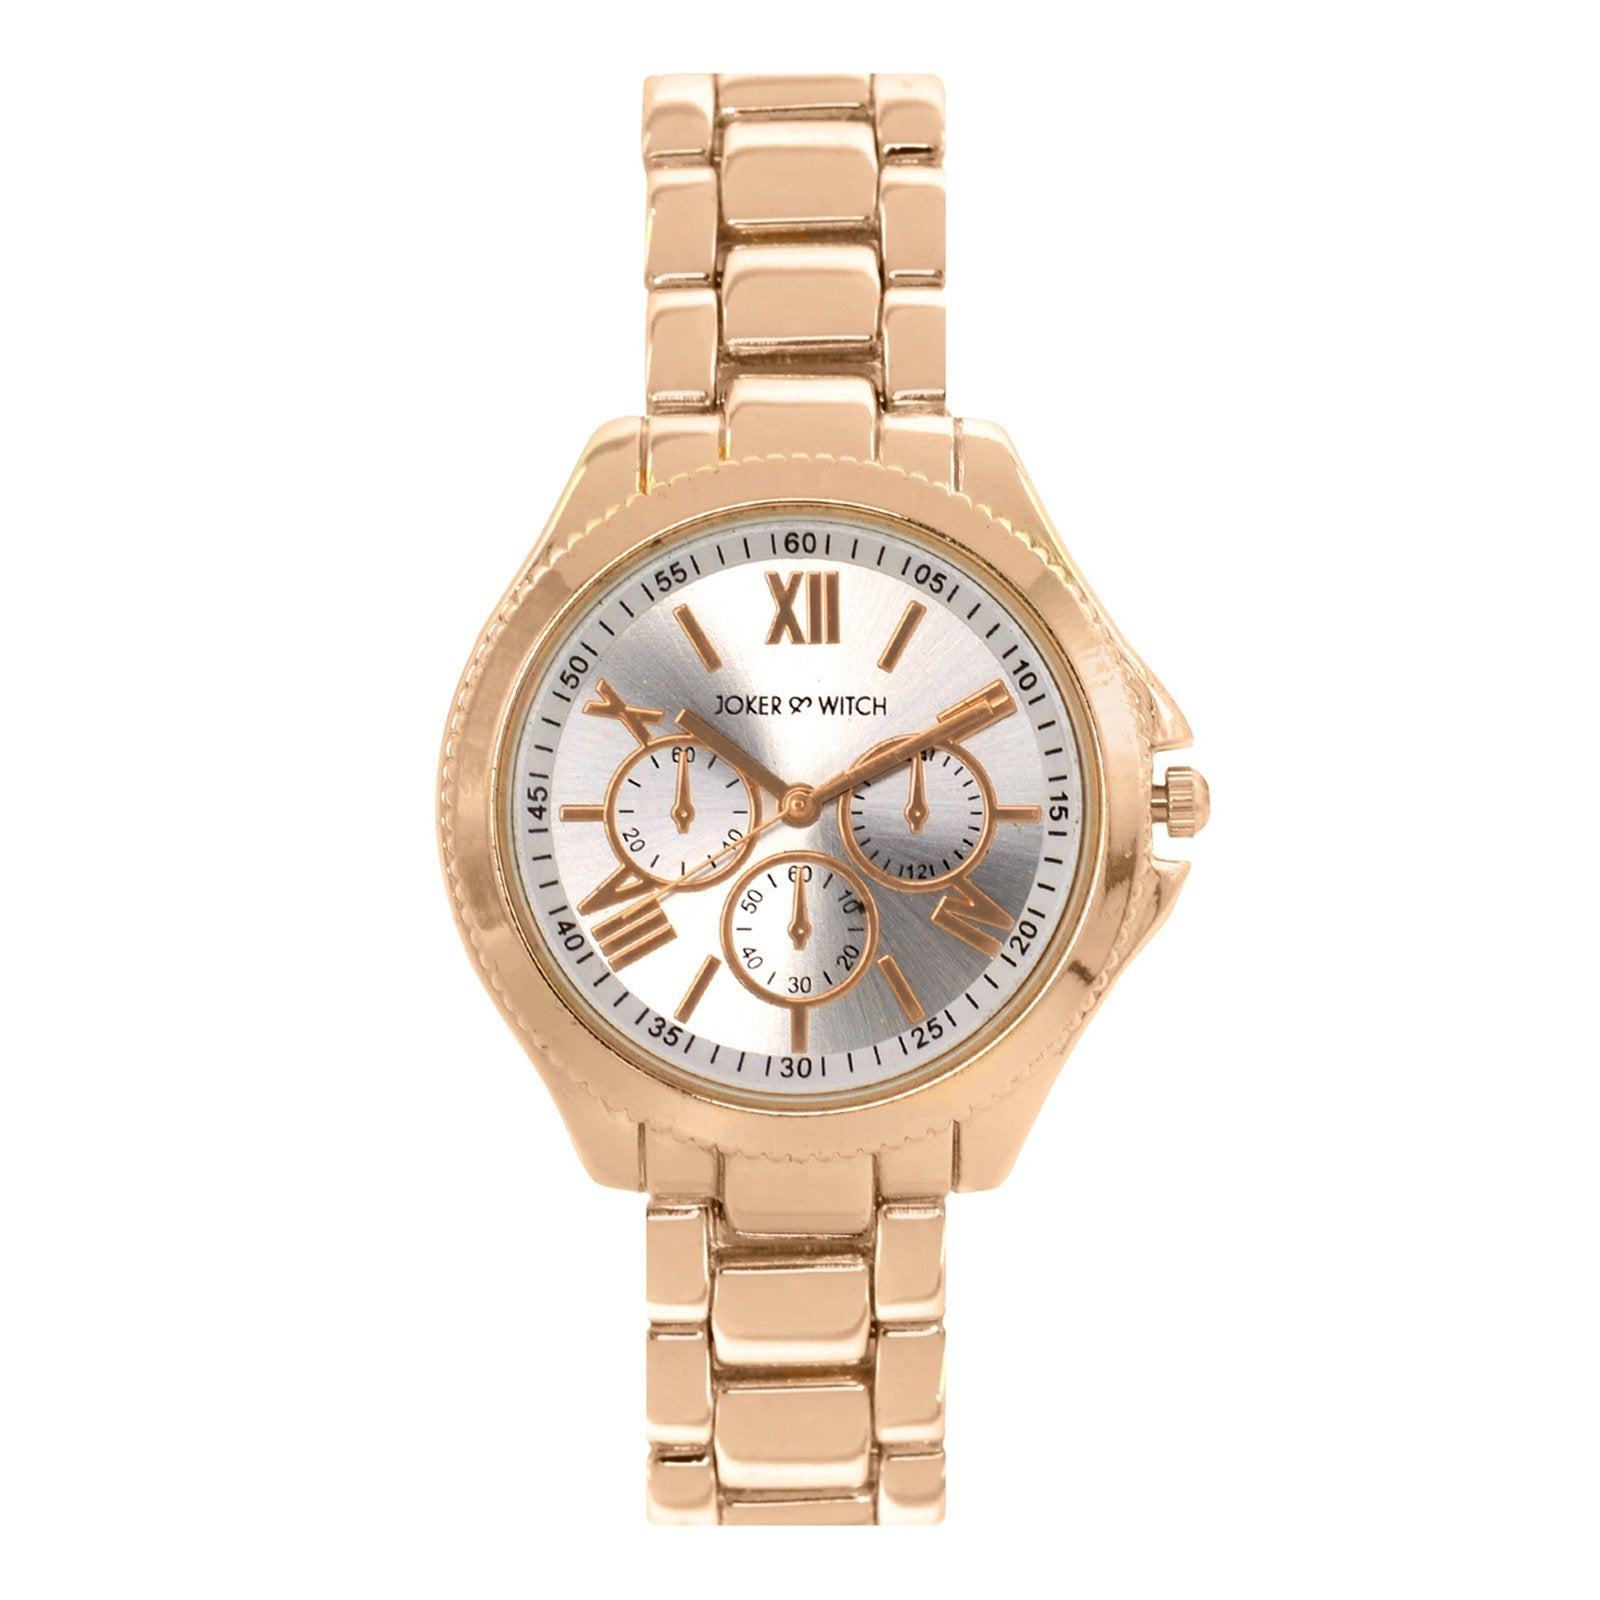 Ella White Dial Rosegold Watch - Joker & Witch